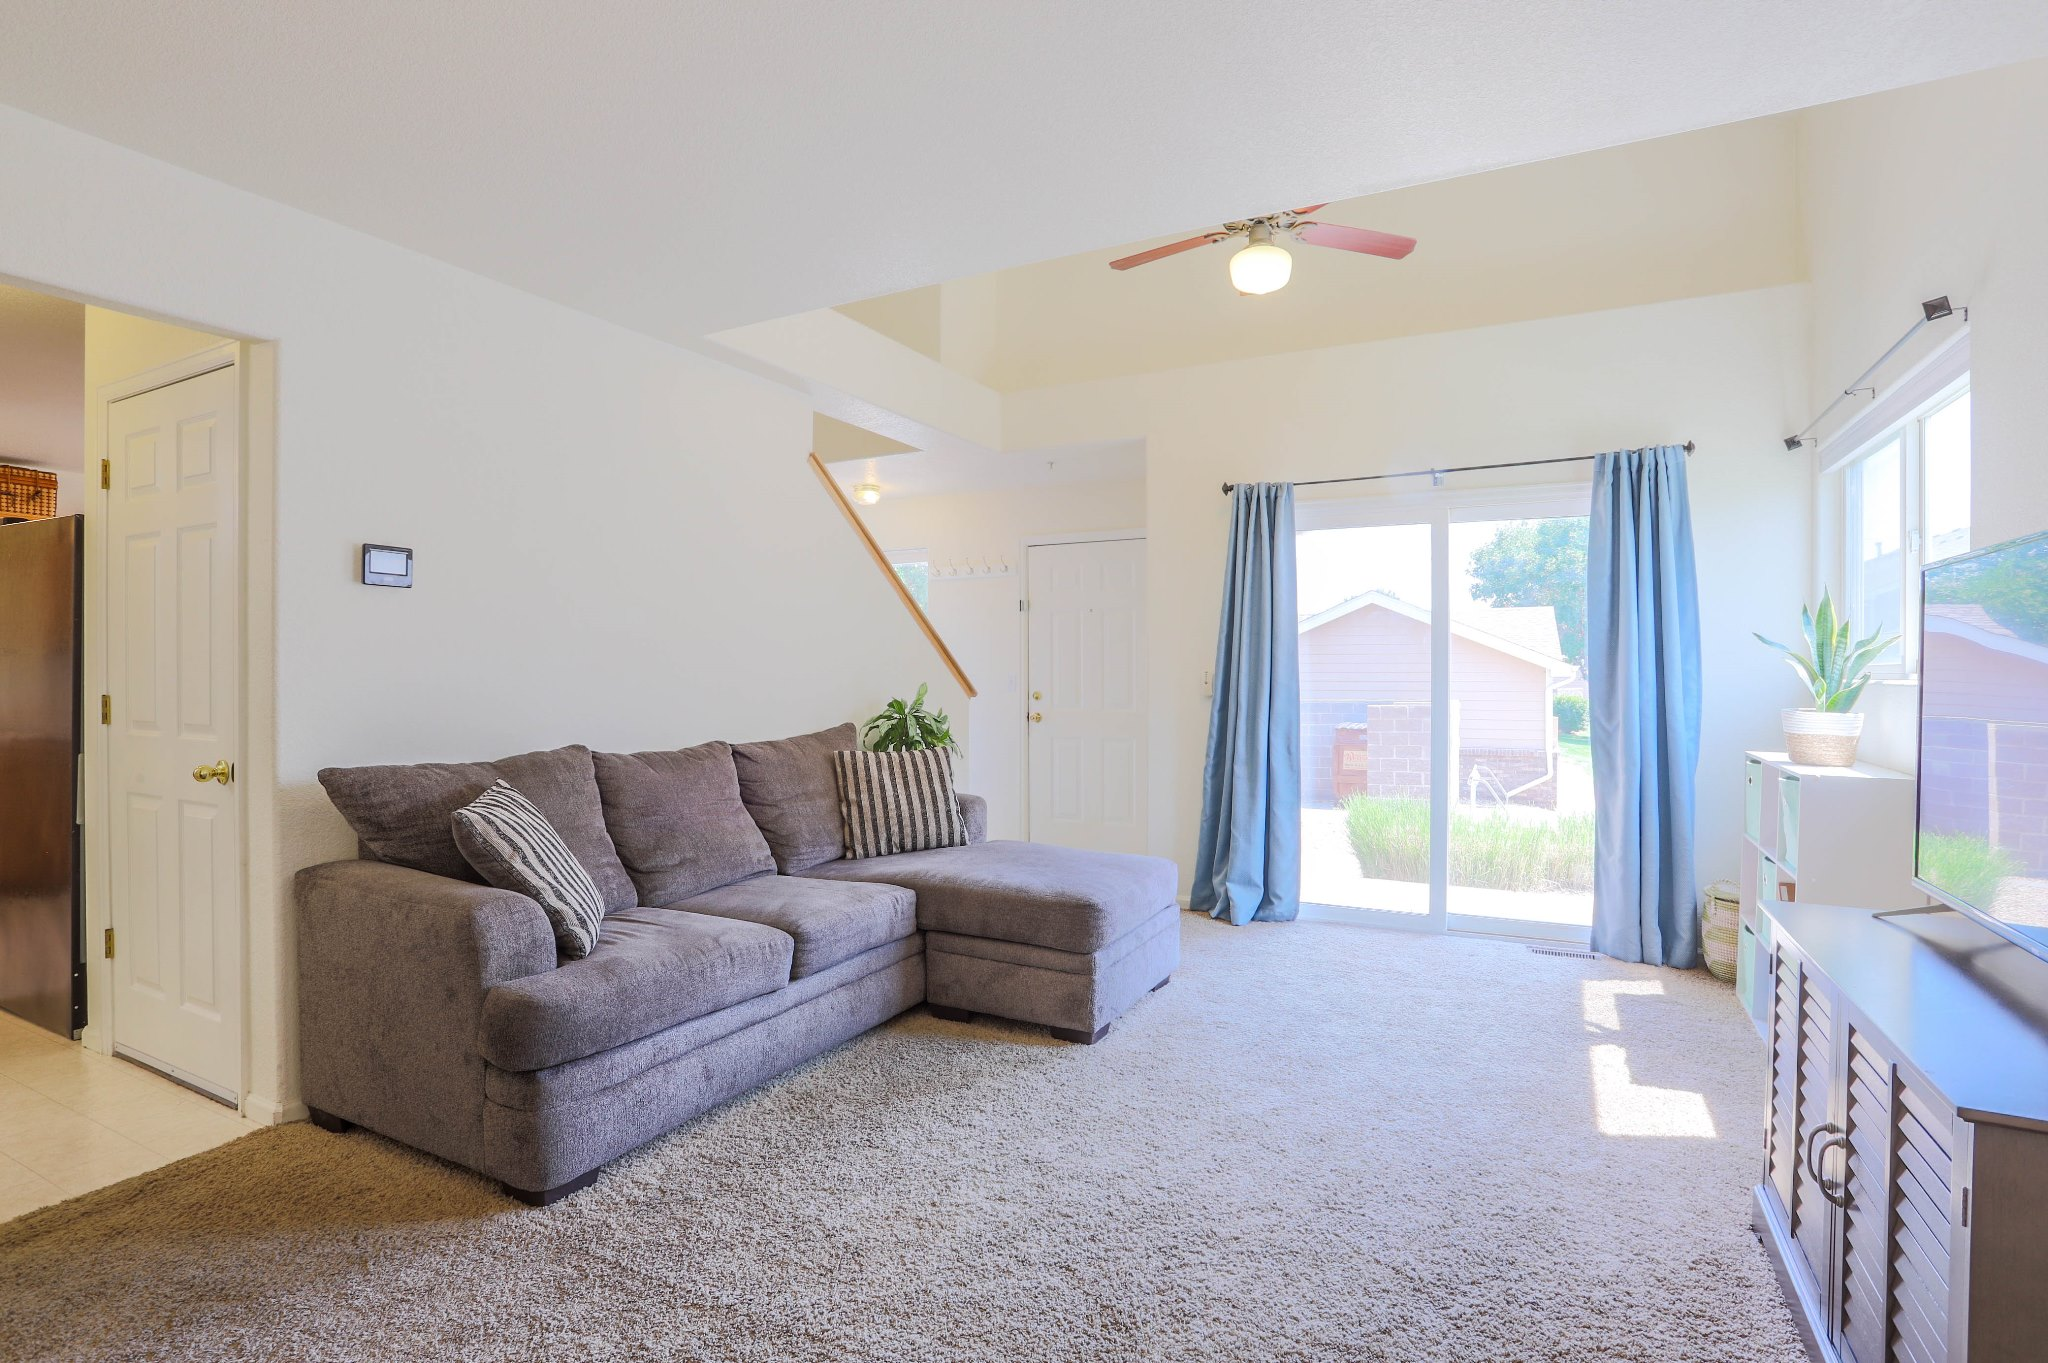 REAL ESTATE LISTING: 1601 Great Western Dr Longmont Great Room